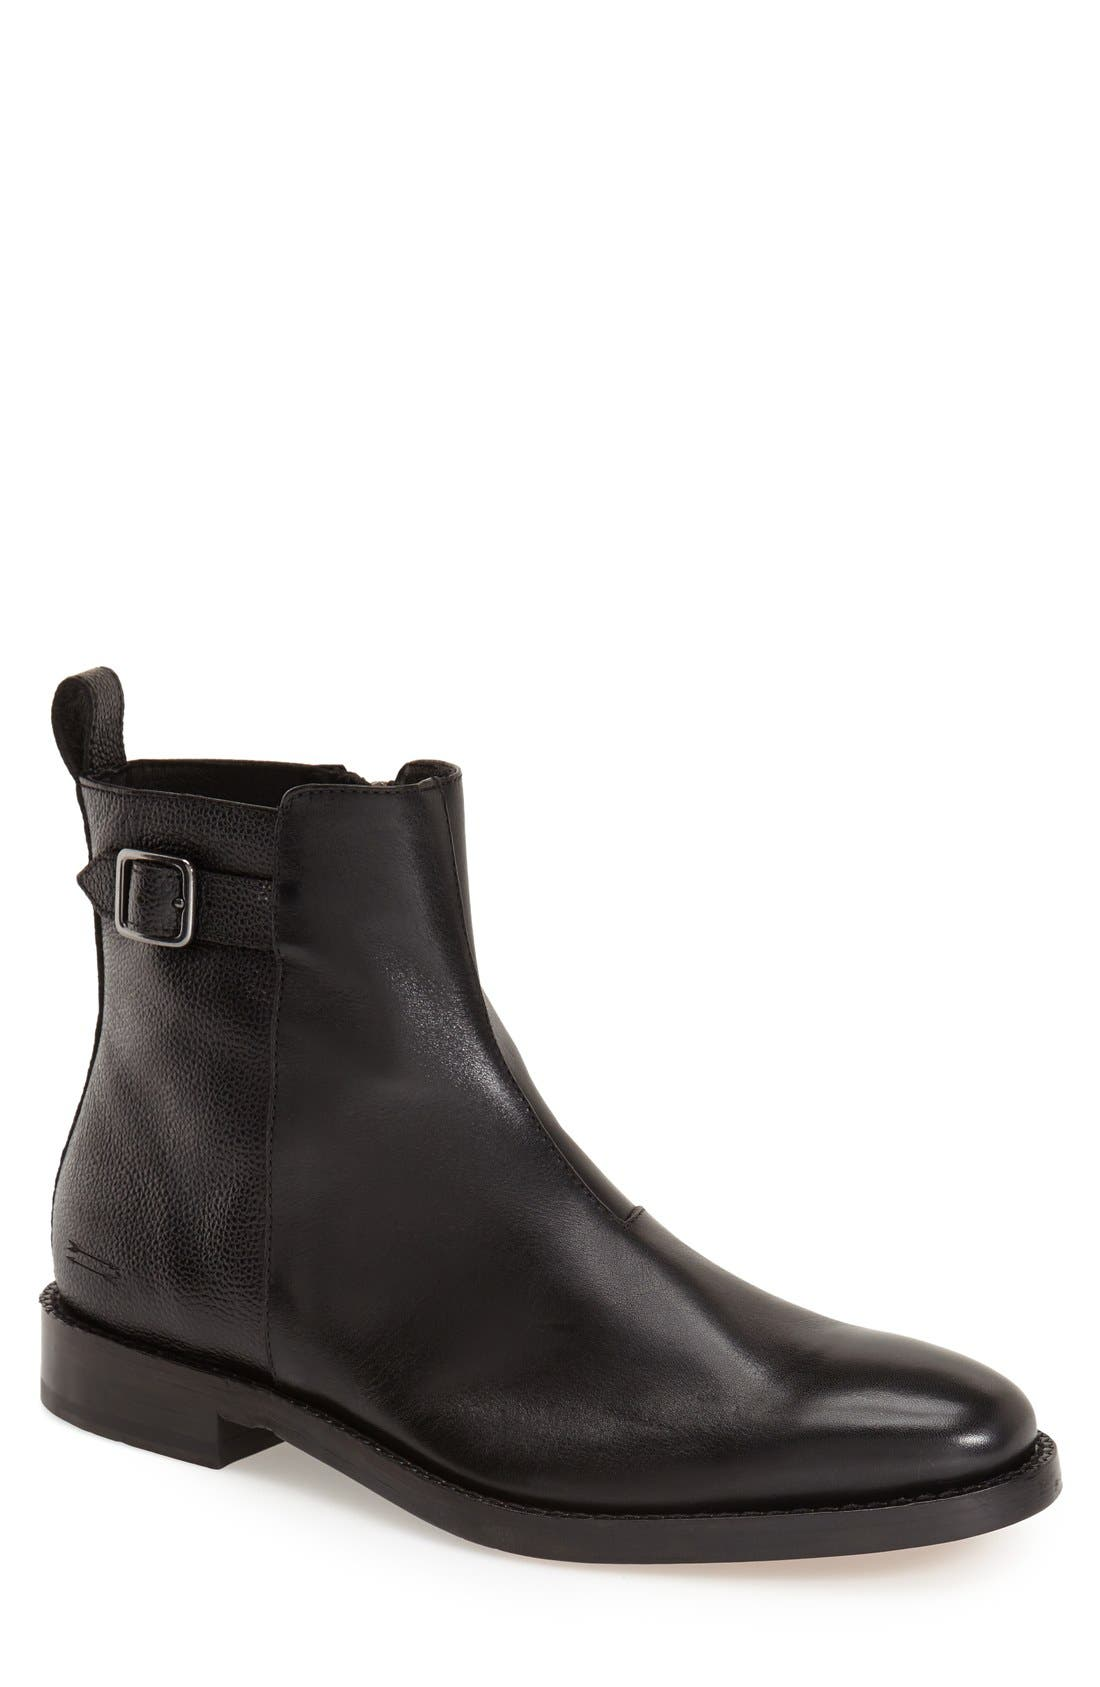 'Manet' Boot,                         Main,                         color,